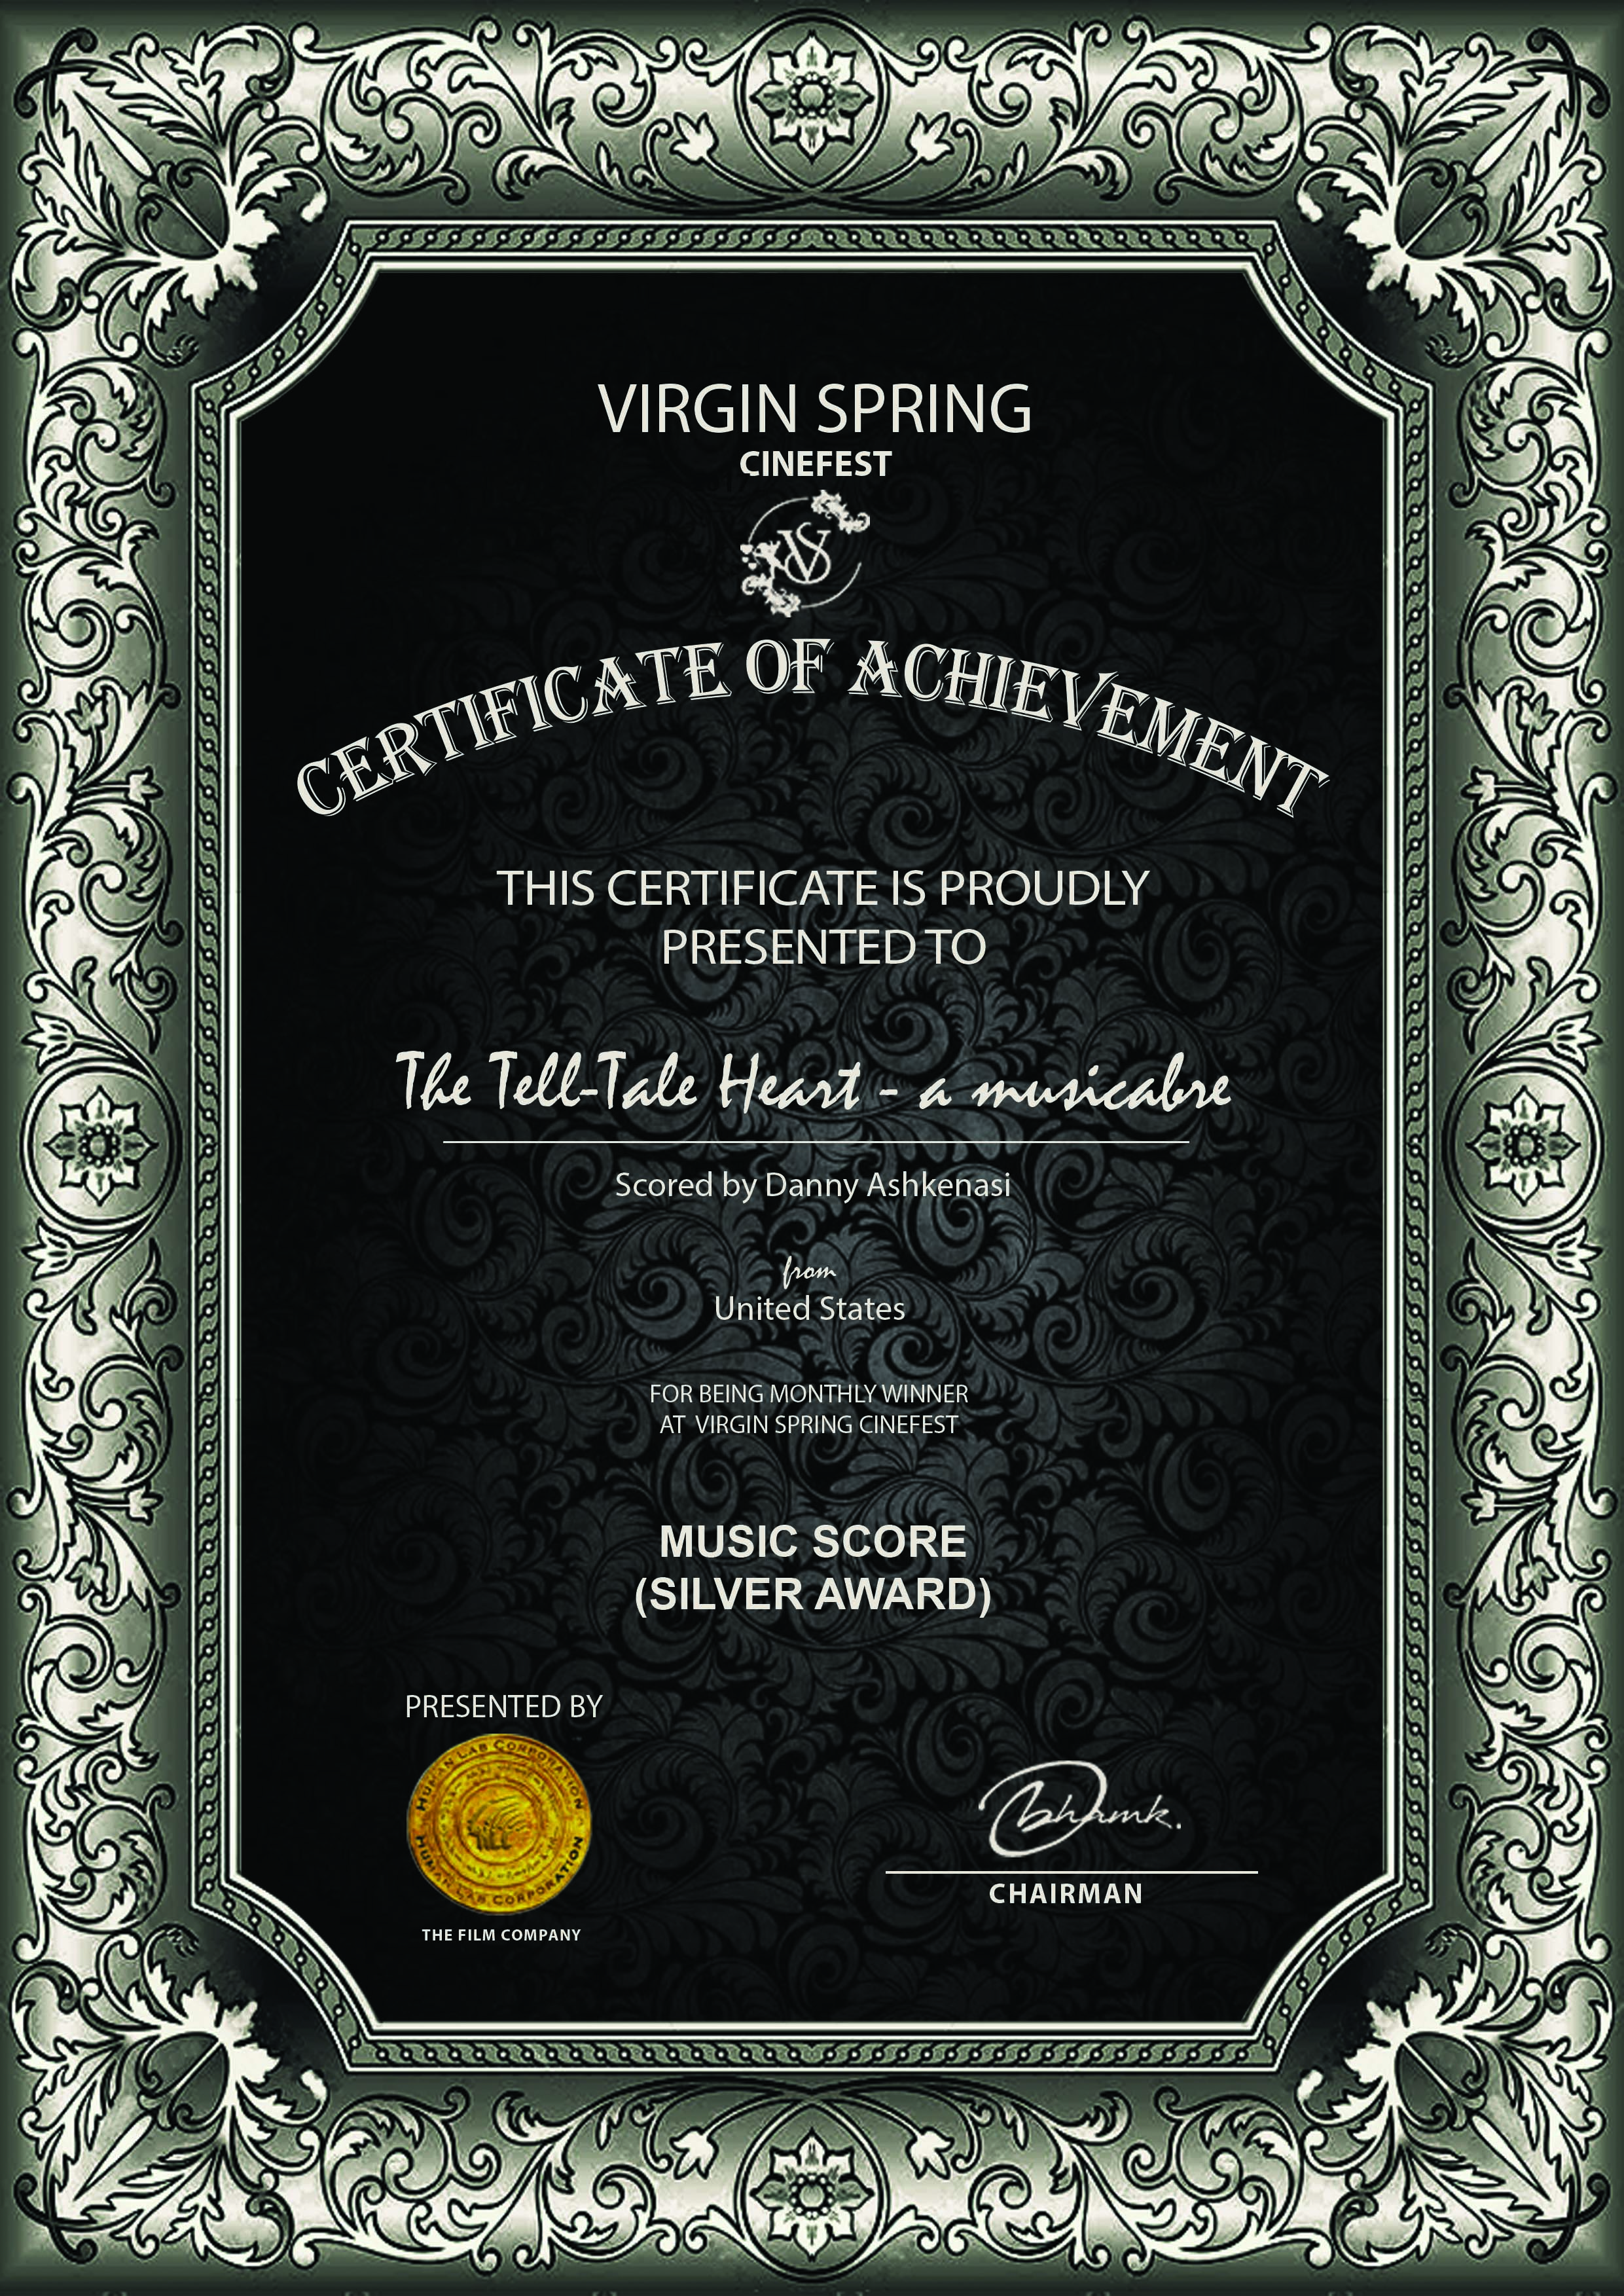 Virgin Spring Score The Tell-Tale Heart - a musicabre